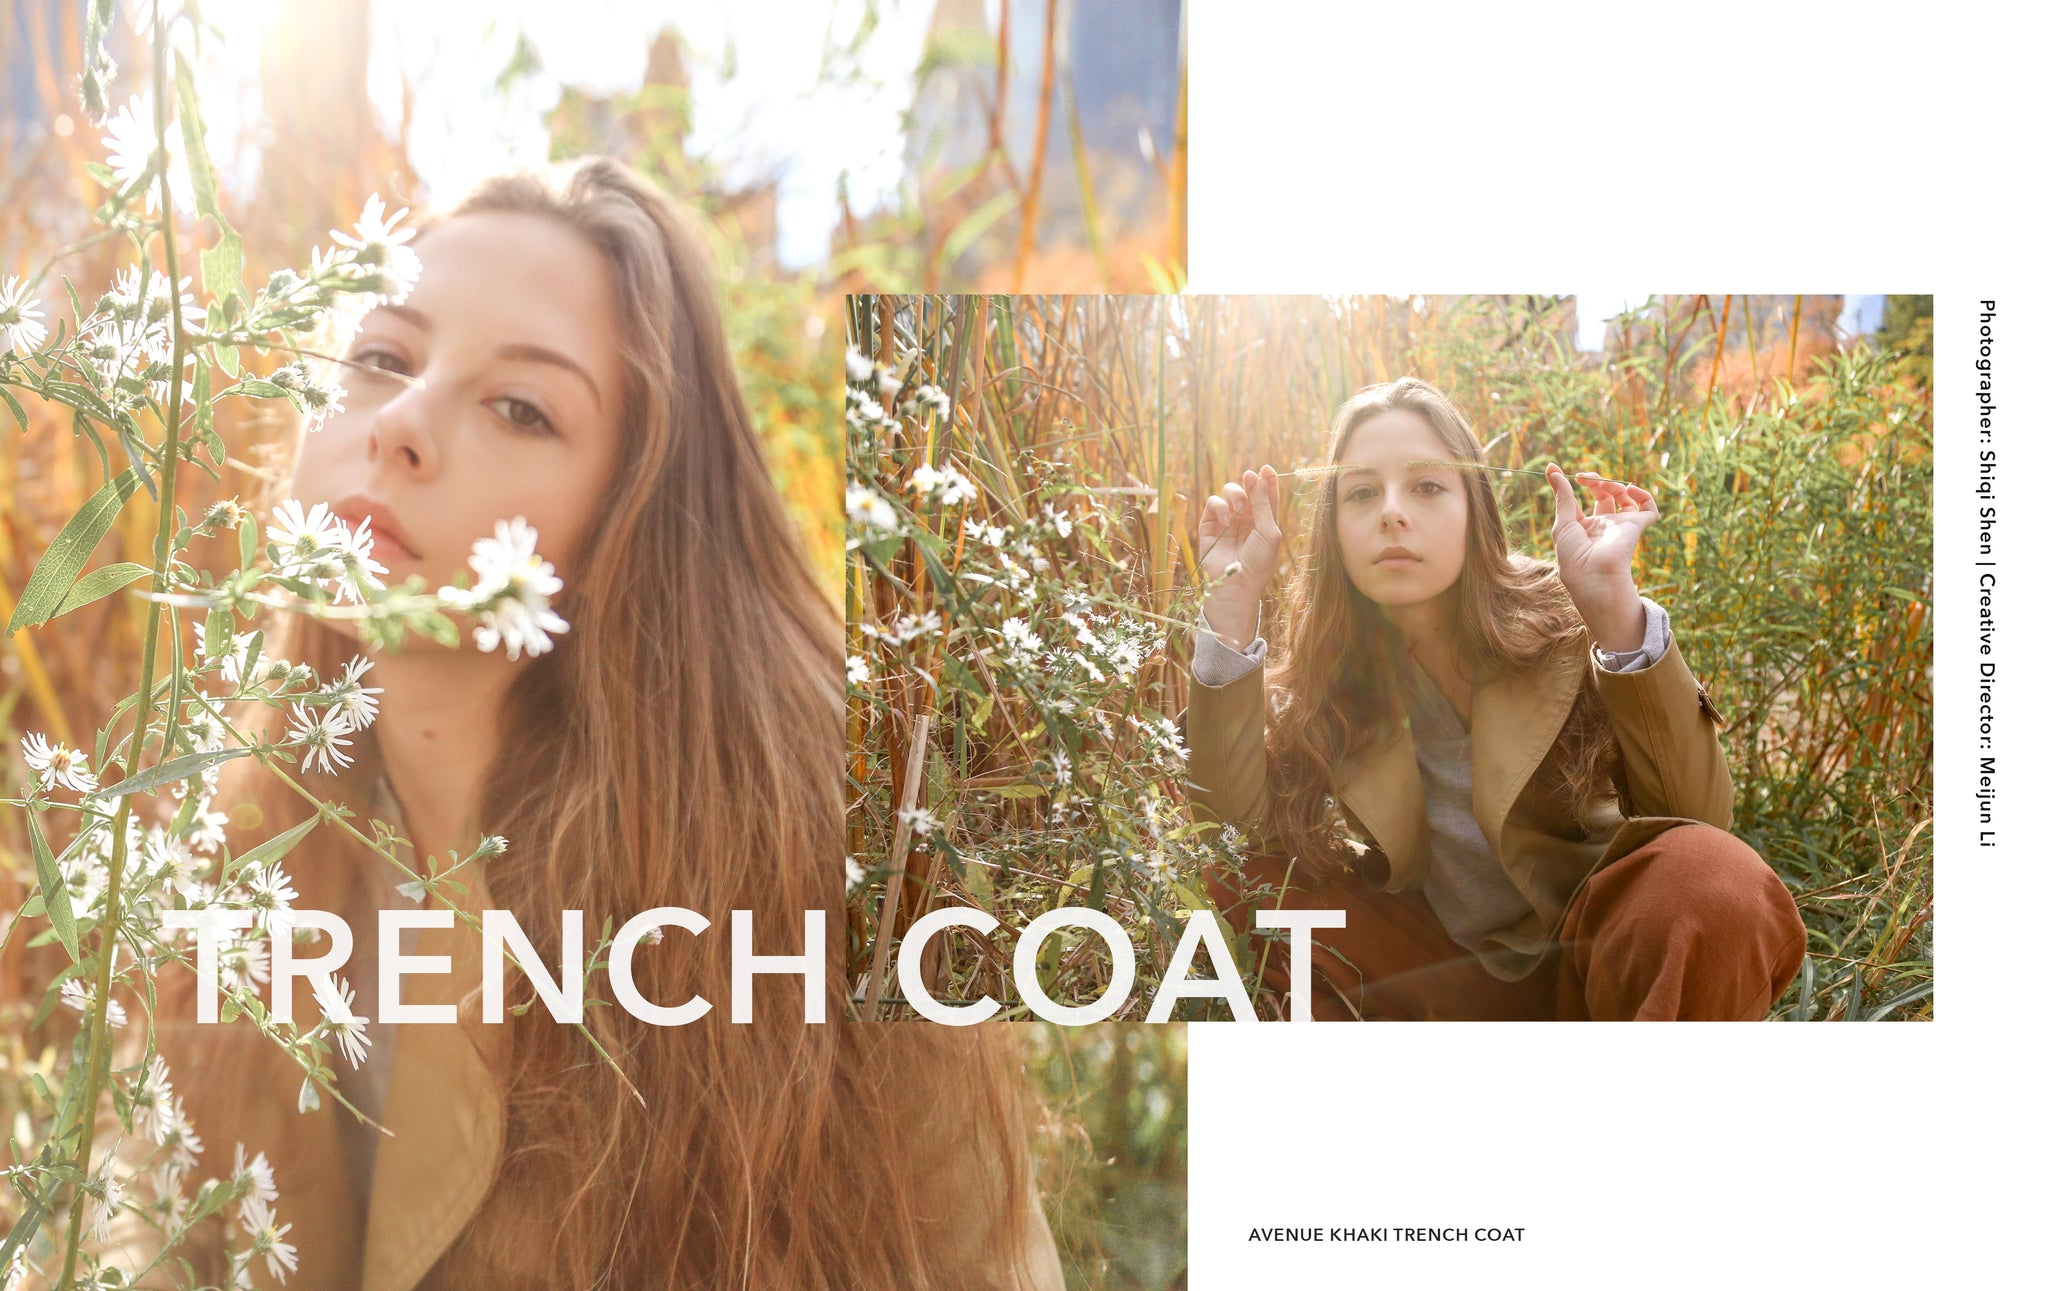 Petite Studio | Nov'16 LookBook | AVENUE KHAKI TRENCH COAT